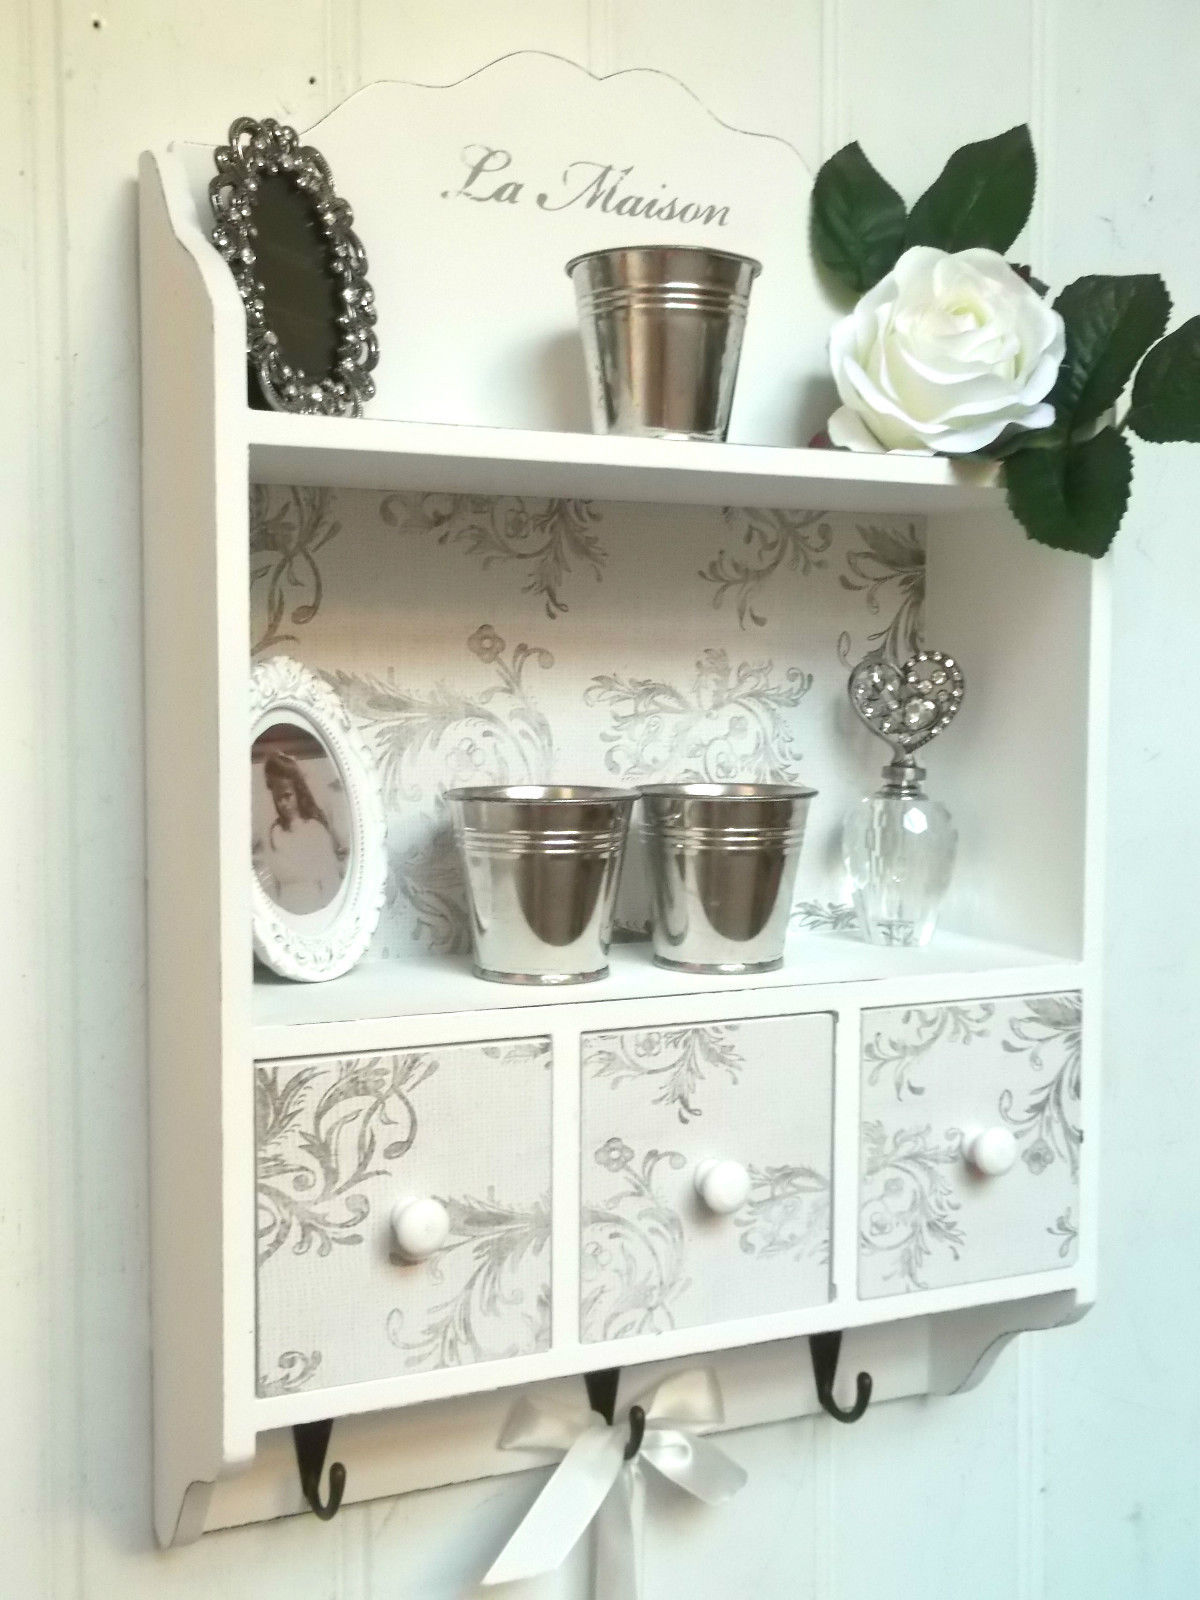 Vintage Chic Home Decor Shabby Chic Wall Unit Shelf Storage Cupboard Cabinet Hooks